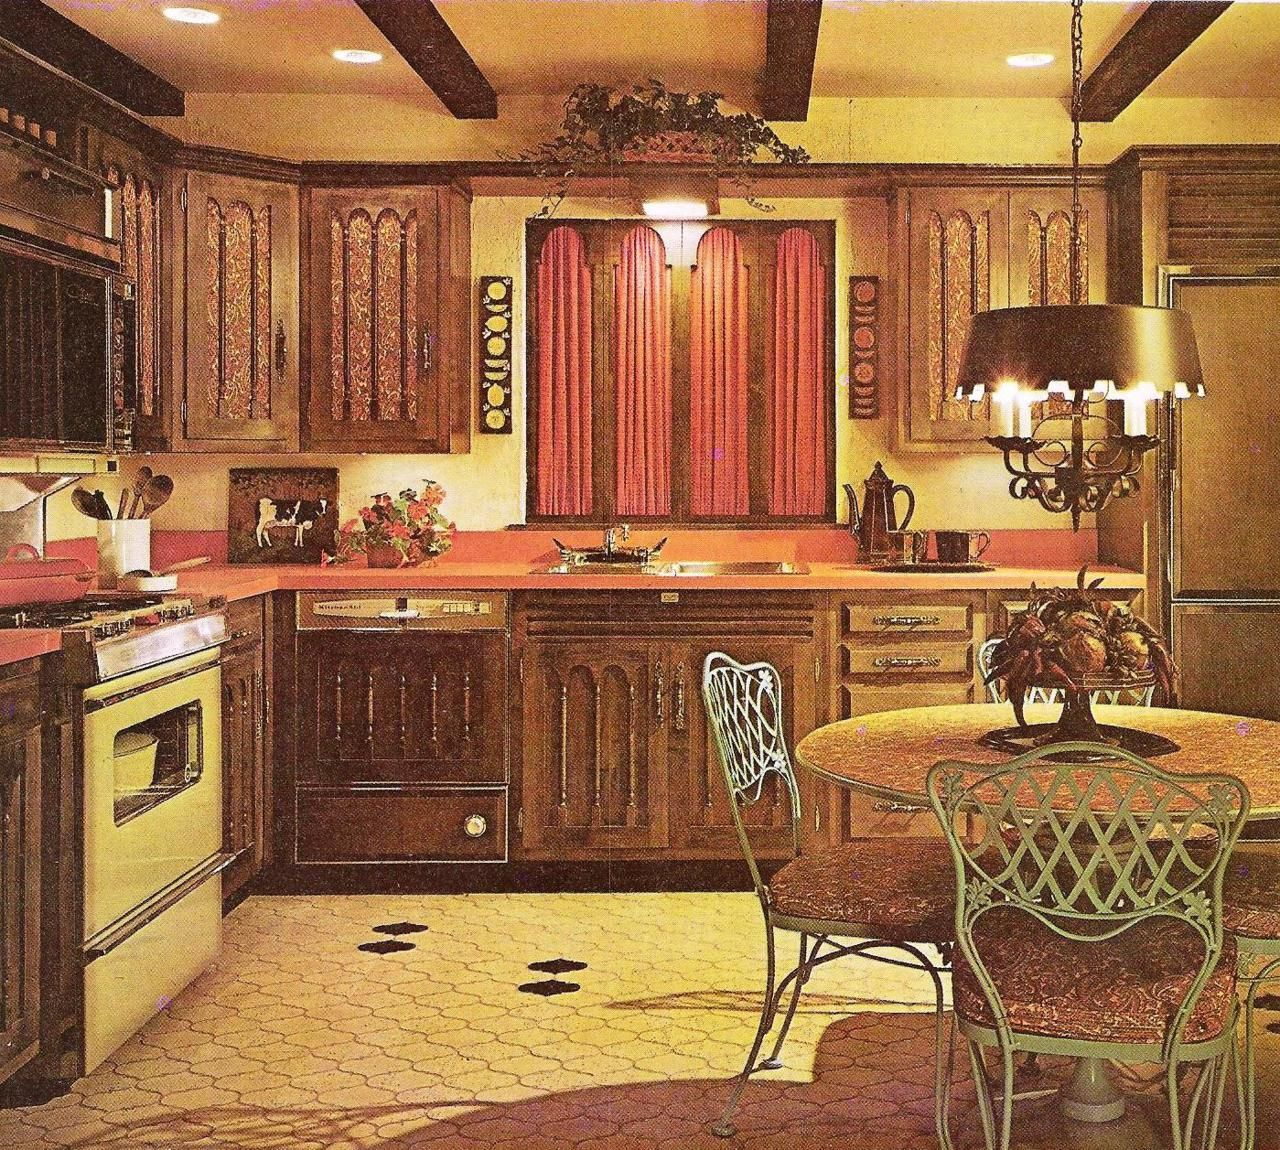 Retro Style Kitchen Mediterranean Style Kitchen 1972 Midcentury And Vintage